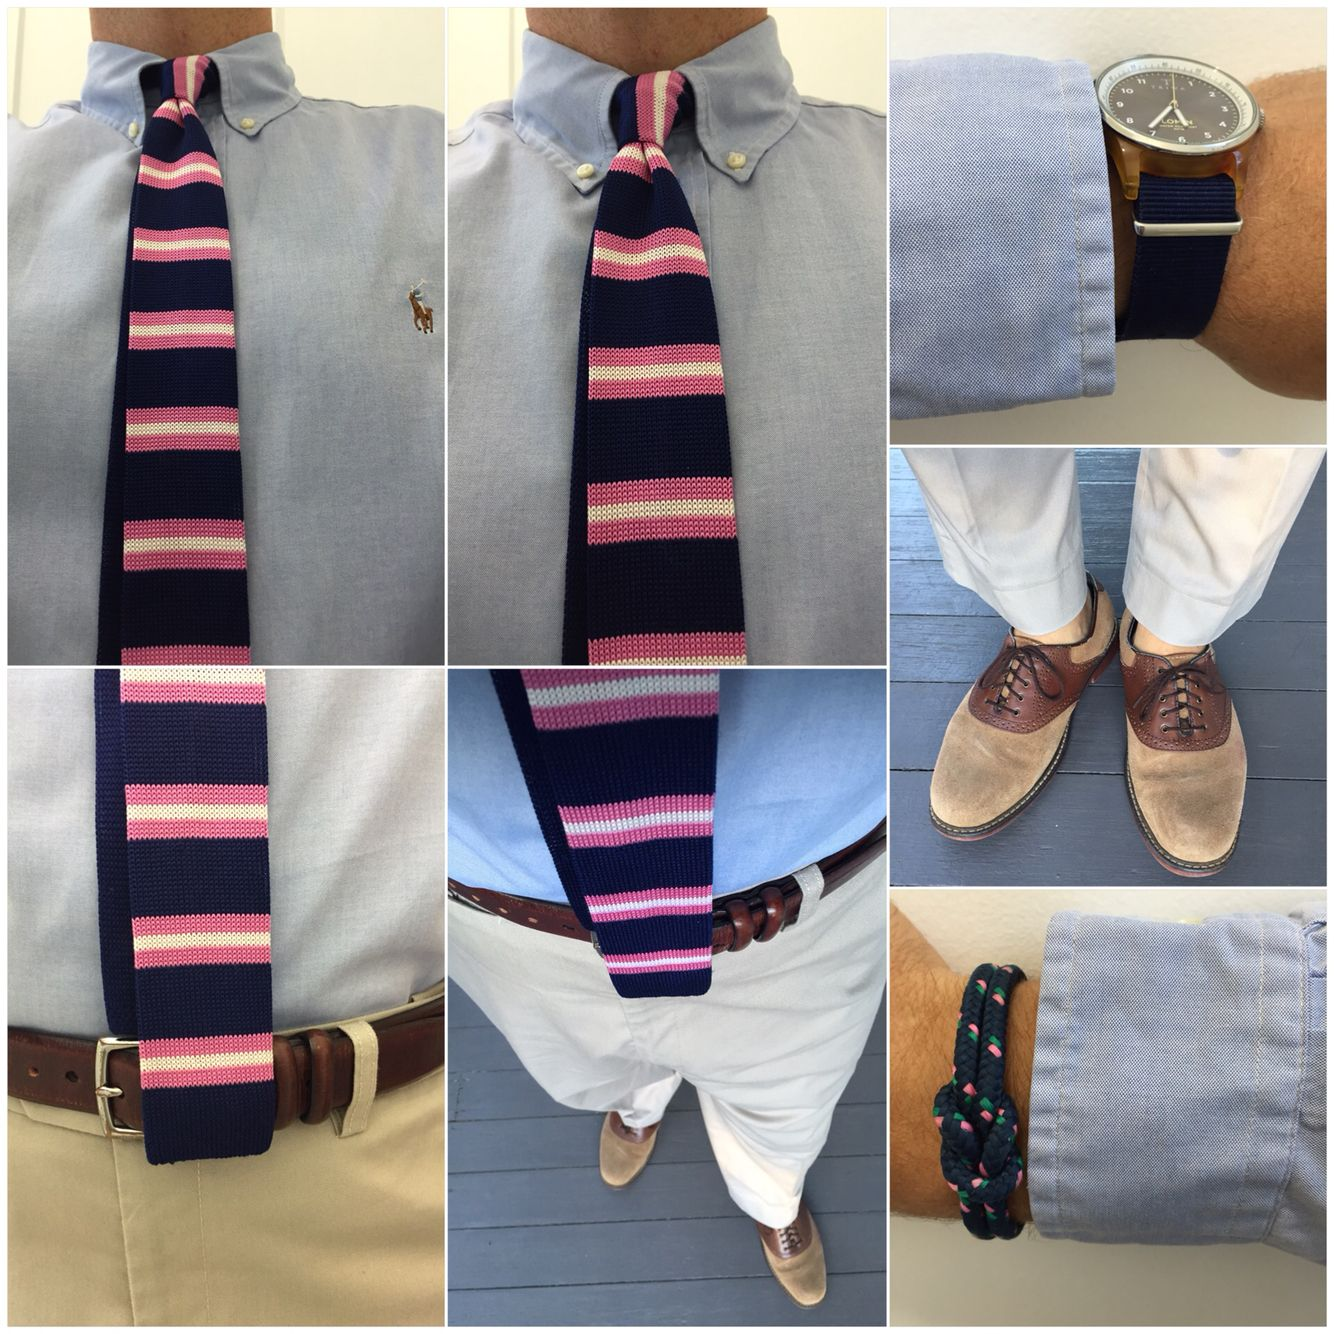 #WIWT got much to do & not enough time, keep plugging away. #prepdom #preppy #ootd #knittie #ghbass